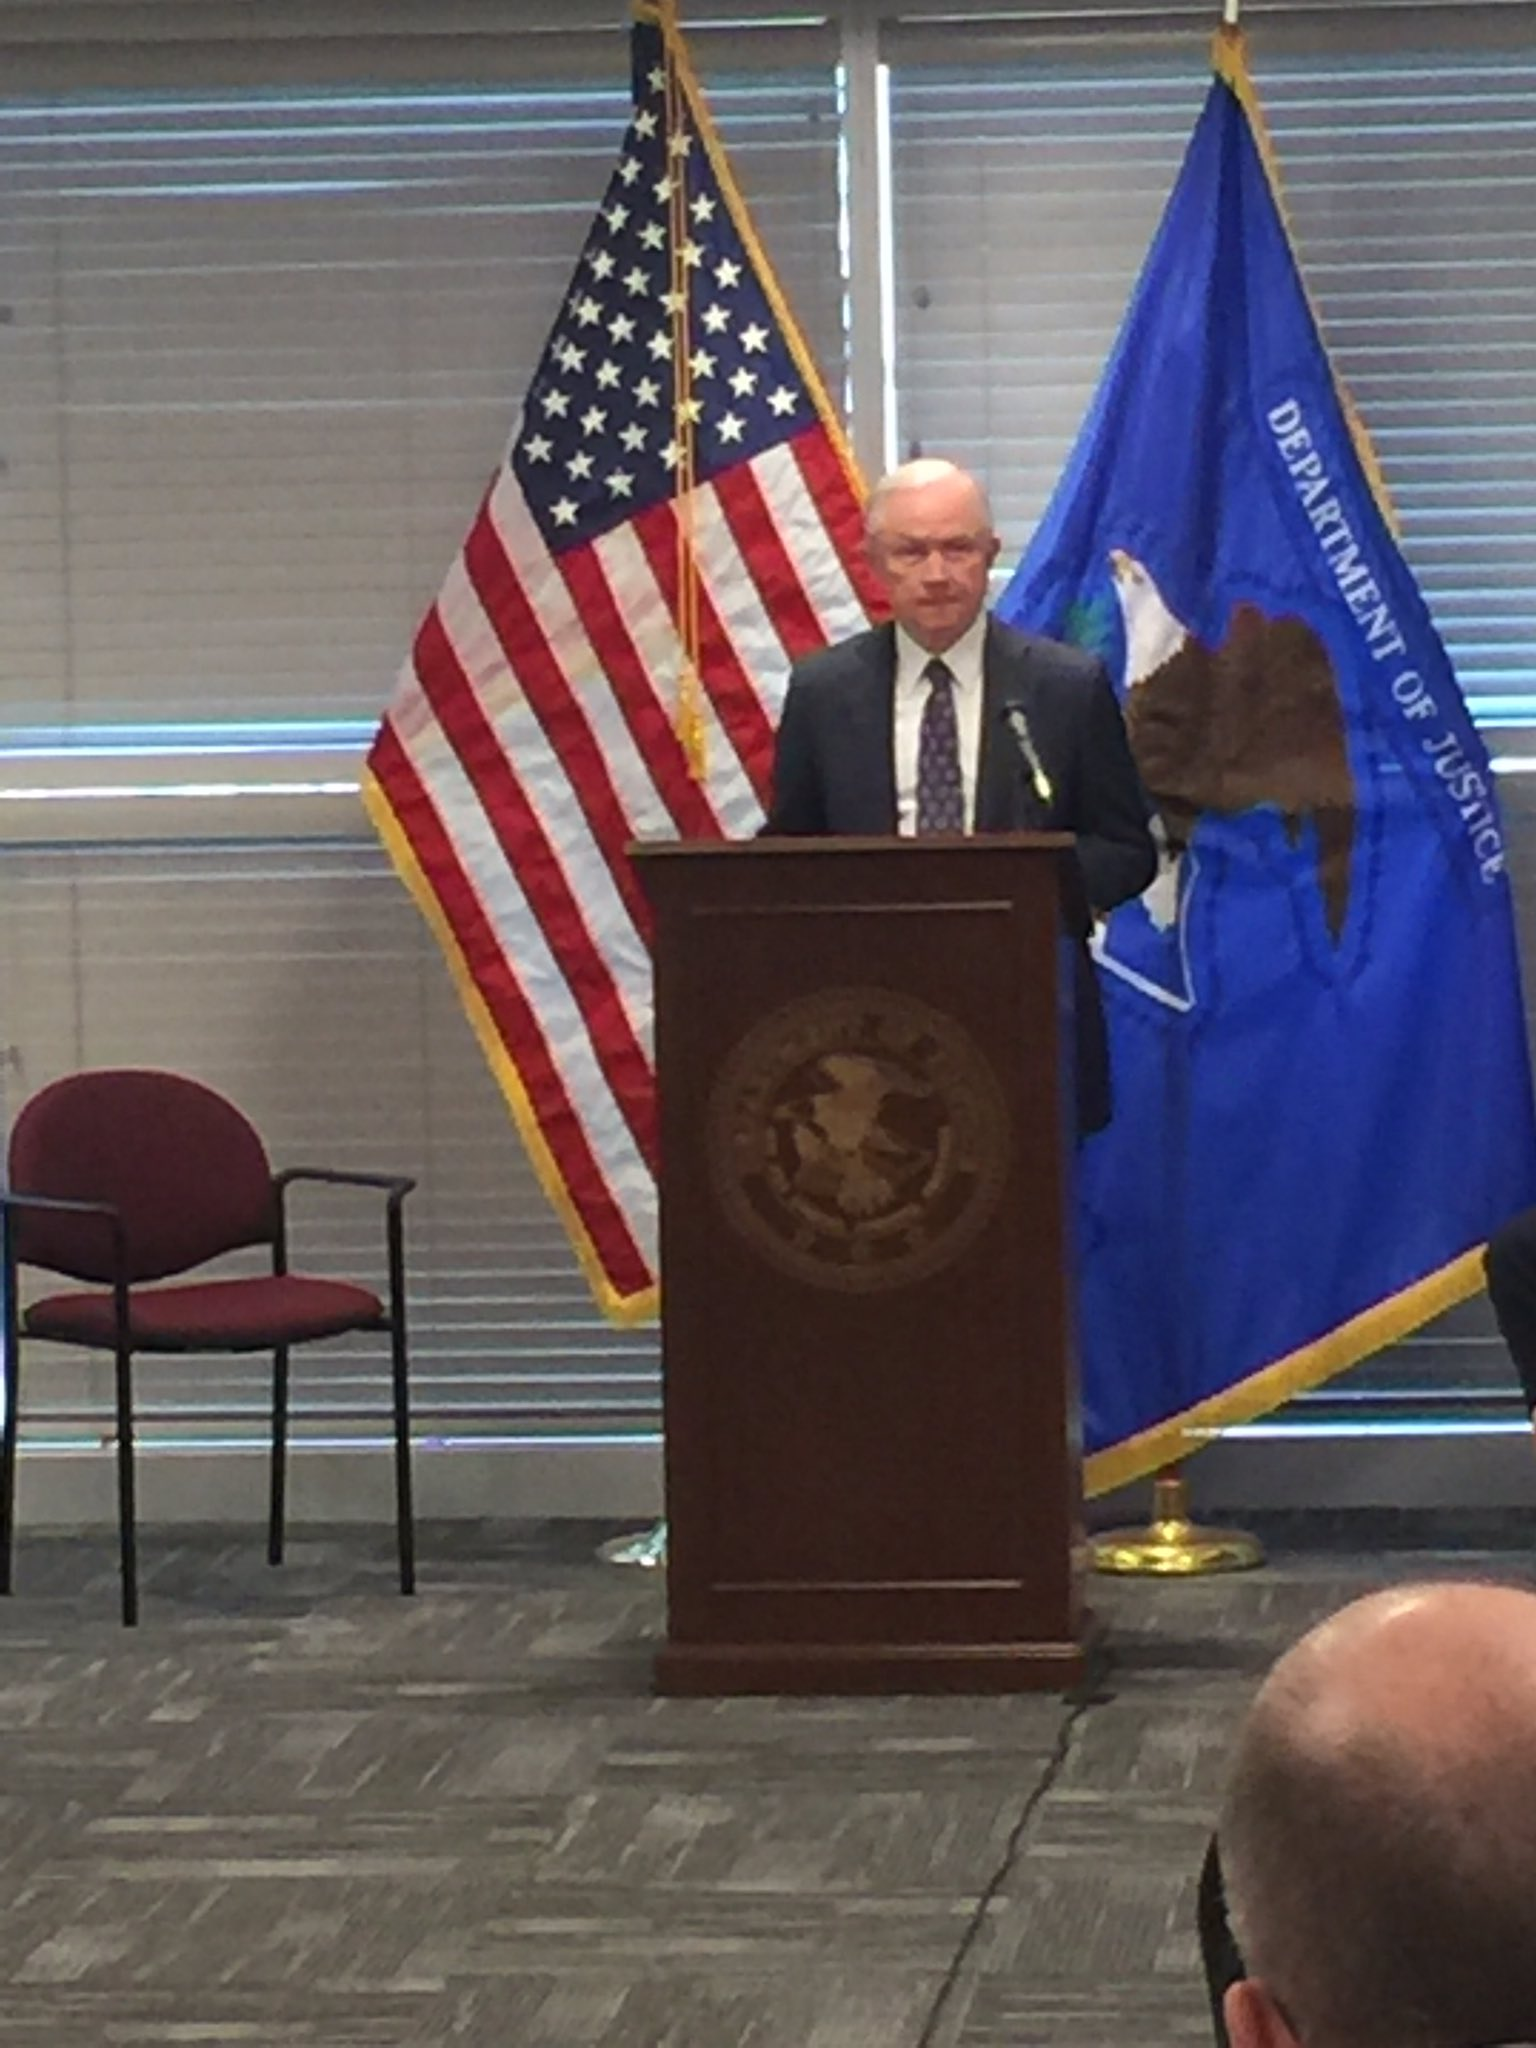 Attorney General Jeff Sessions, giving a speech in Las Vegas on July 12, 2017. (Jeff Gillan | KSNV)